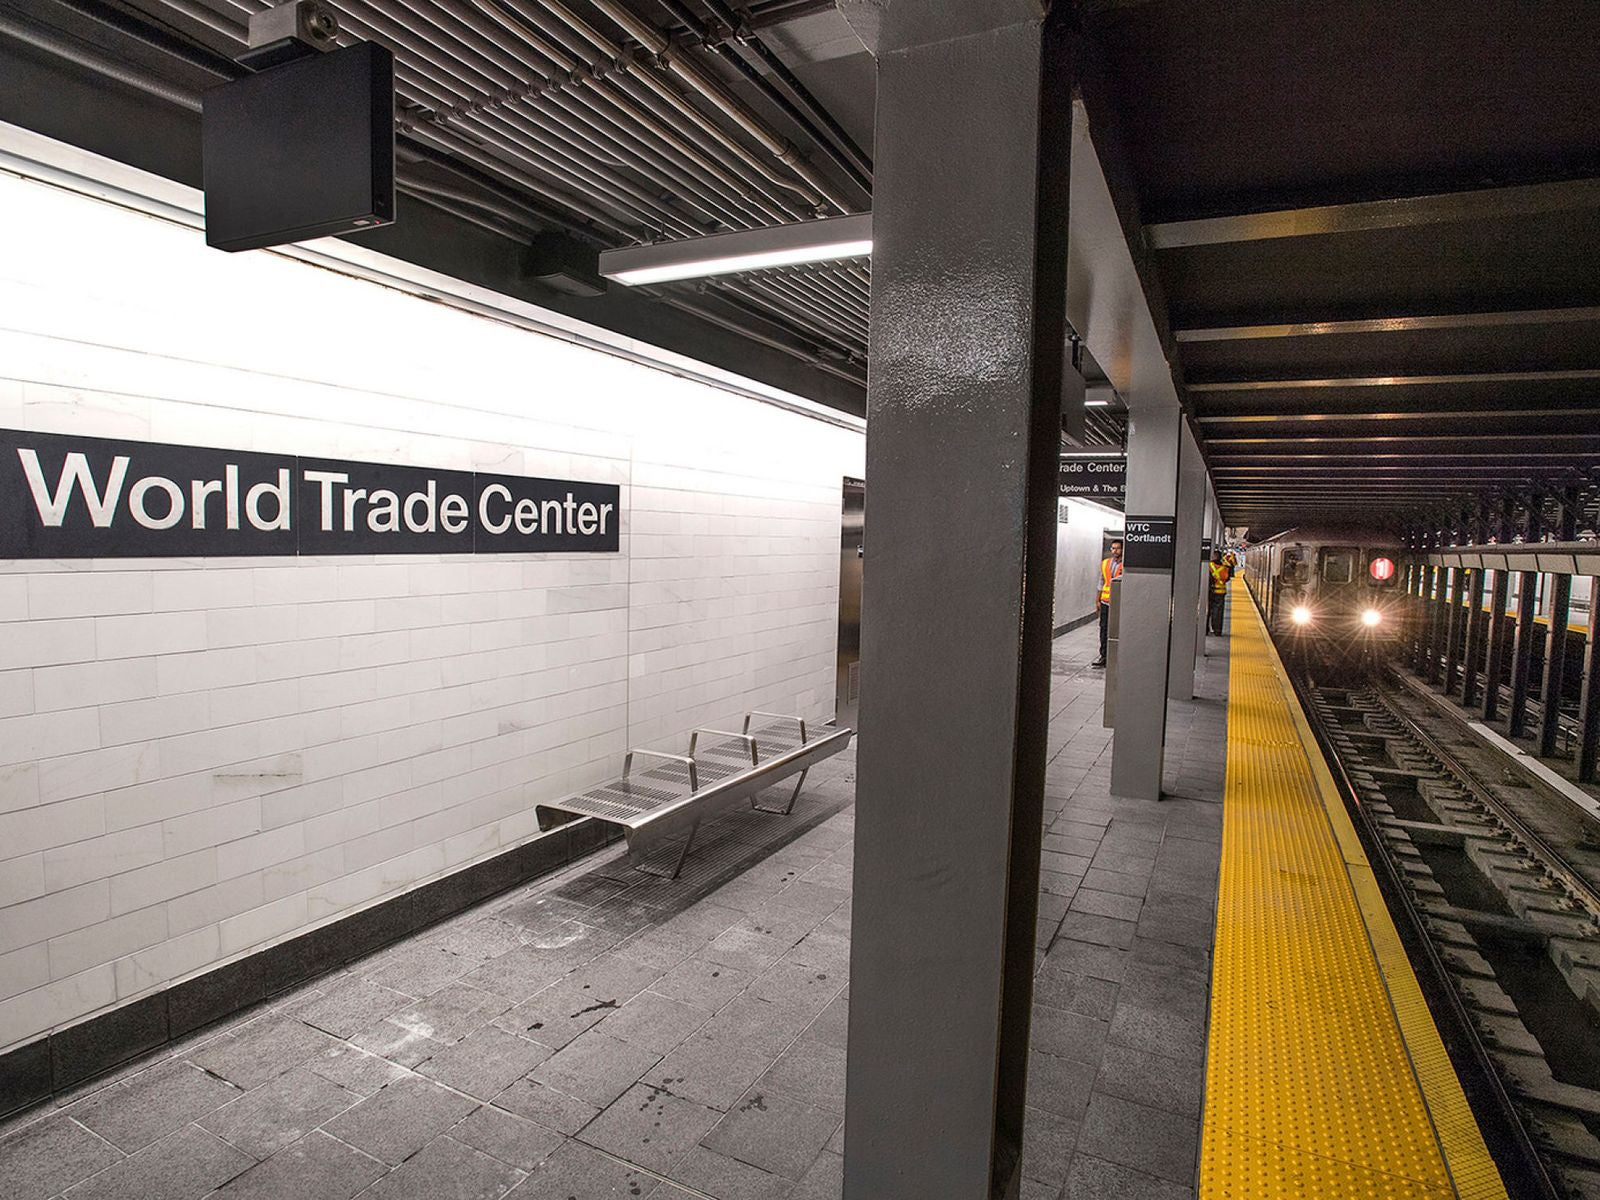 WTC Cortlandt: New York subway station destroyed in 9/11 ...